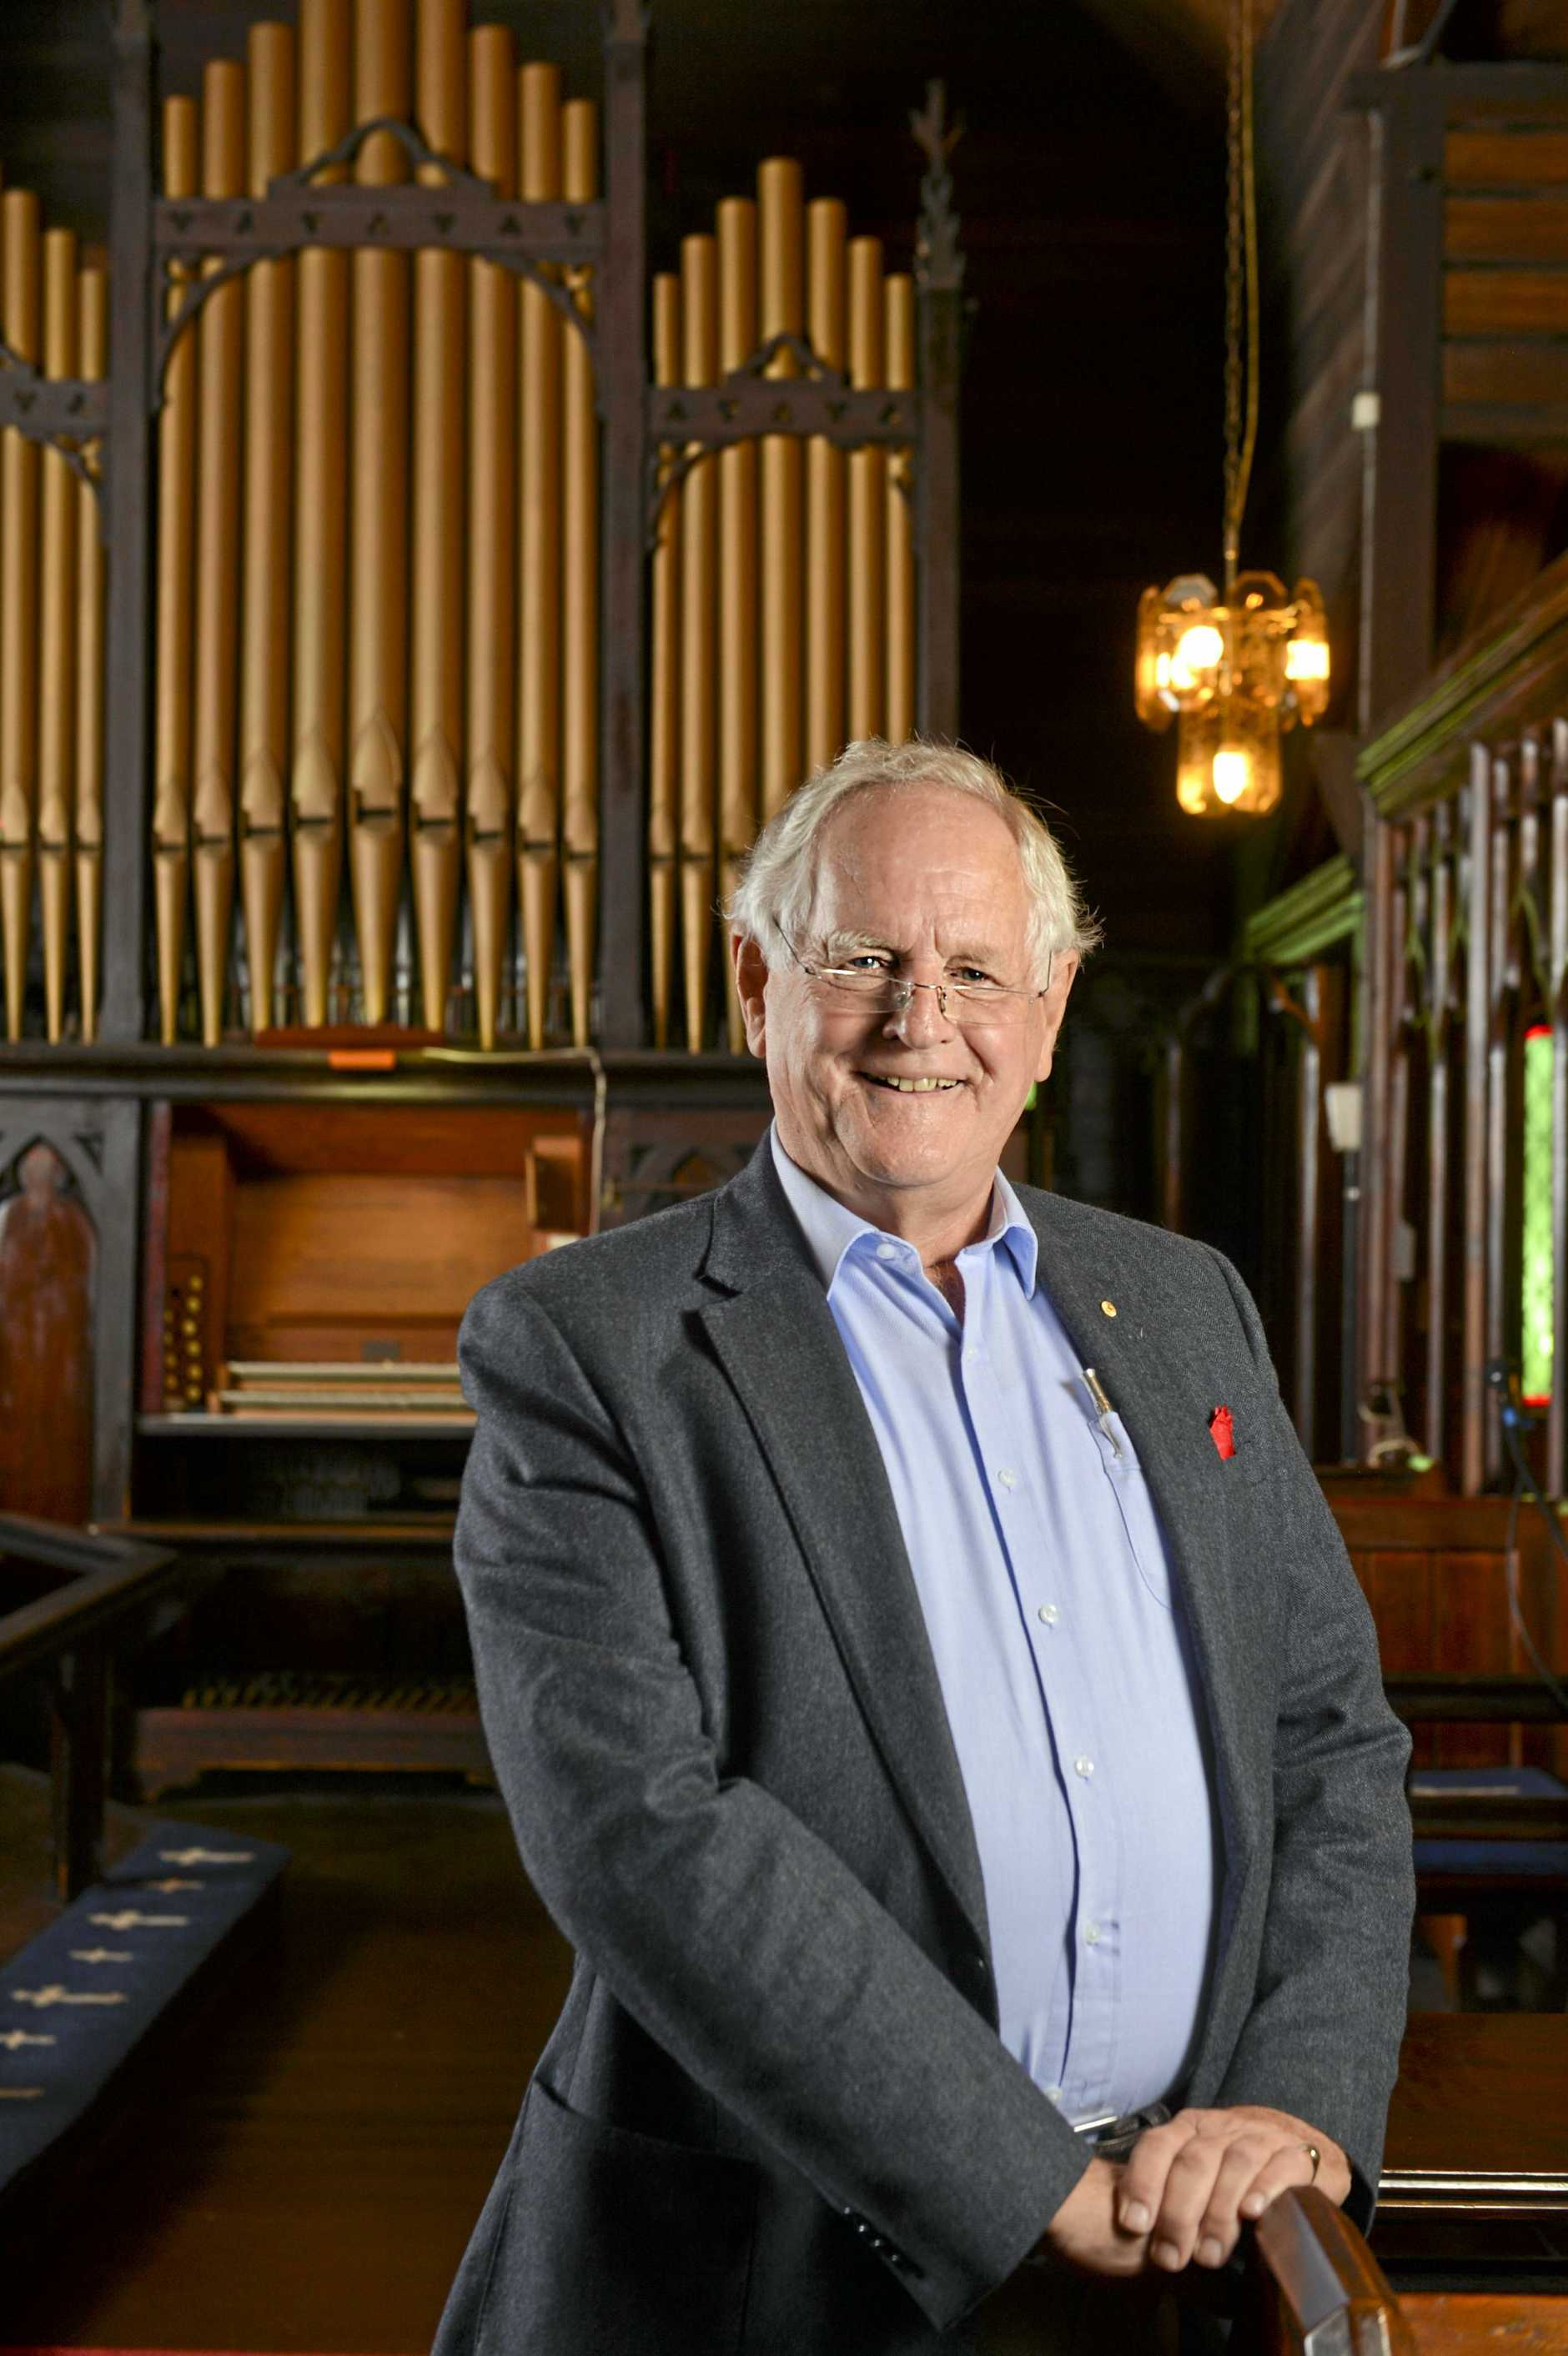 TUNE UP: David Vann OAM, Patron of the Organ Restoration Appeal at St Thomas' Anglican Church.